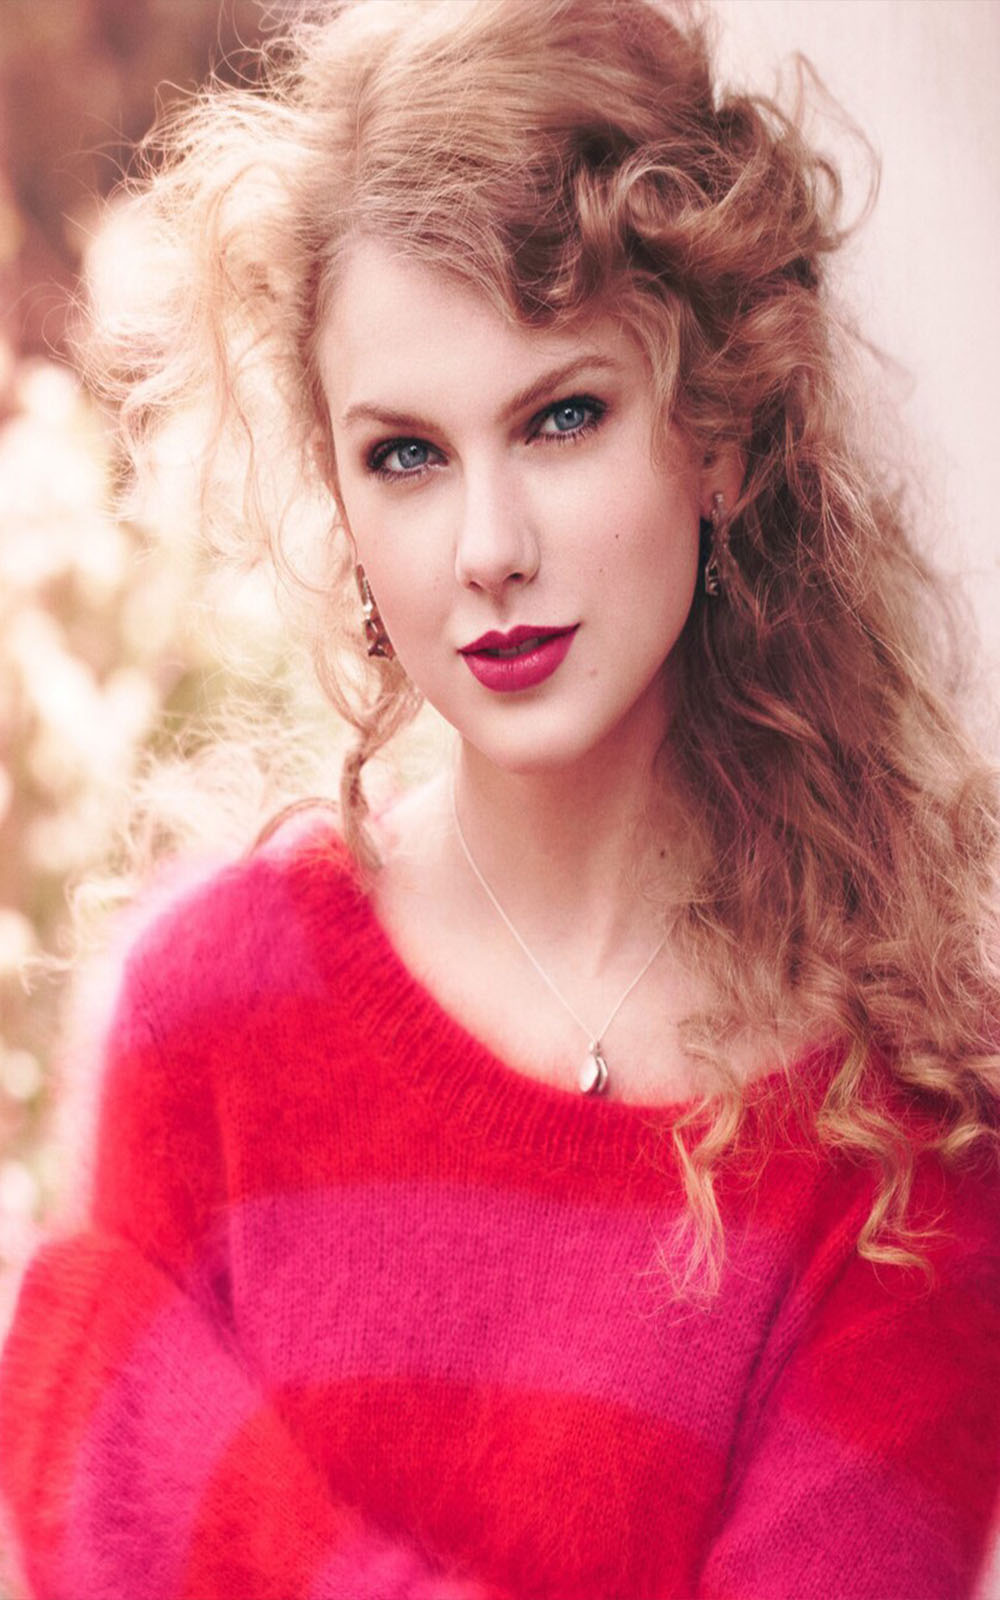 Taylor Swift in Pink Dress - Download Free HD Mobile ...